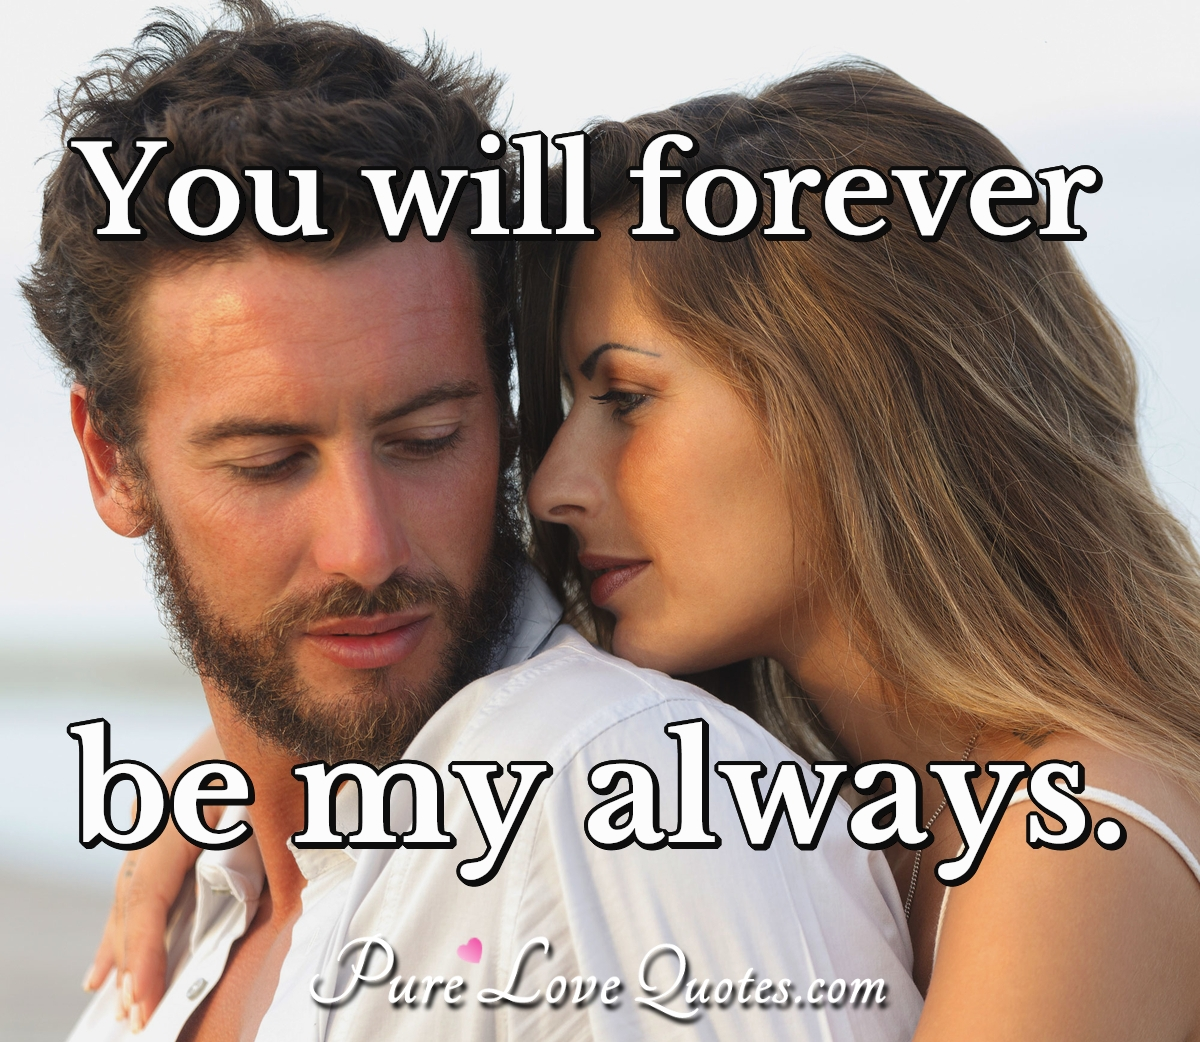 You will forever be my always. - Anonymous